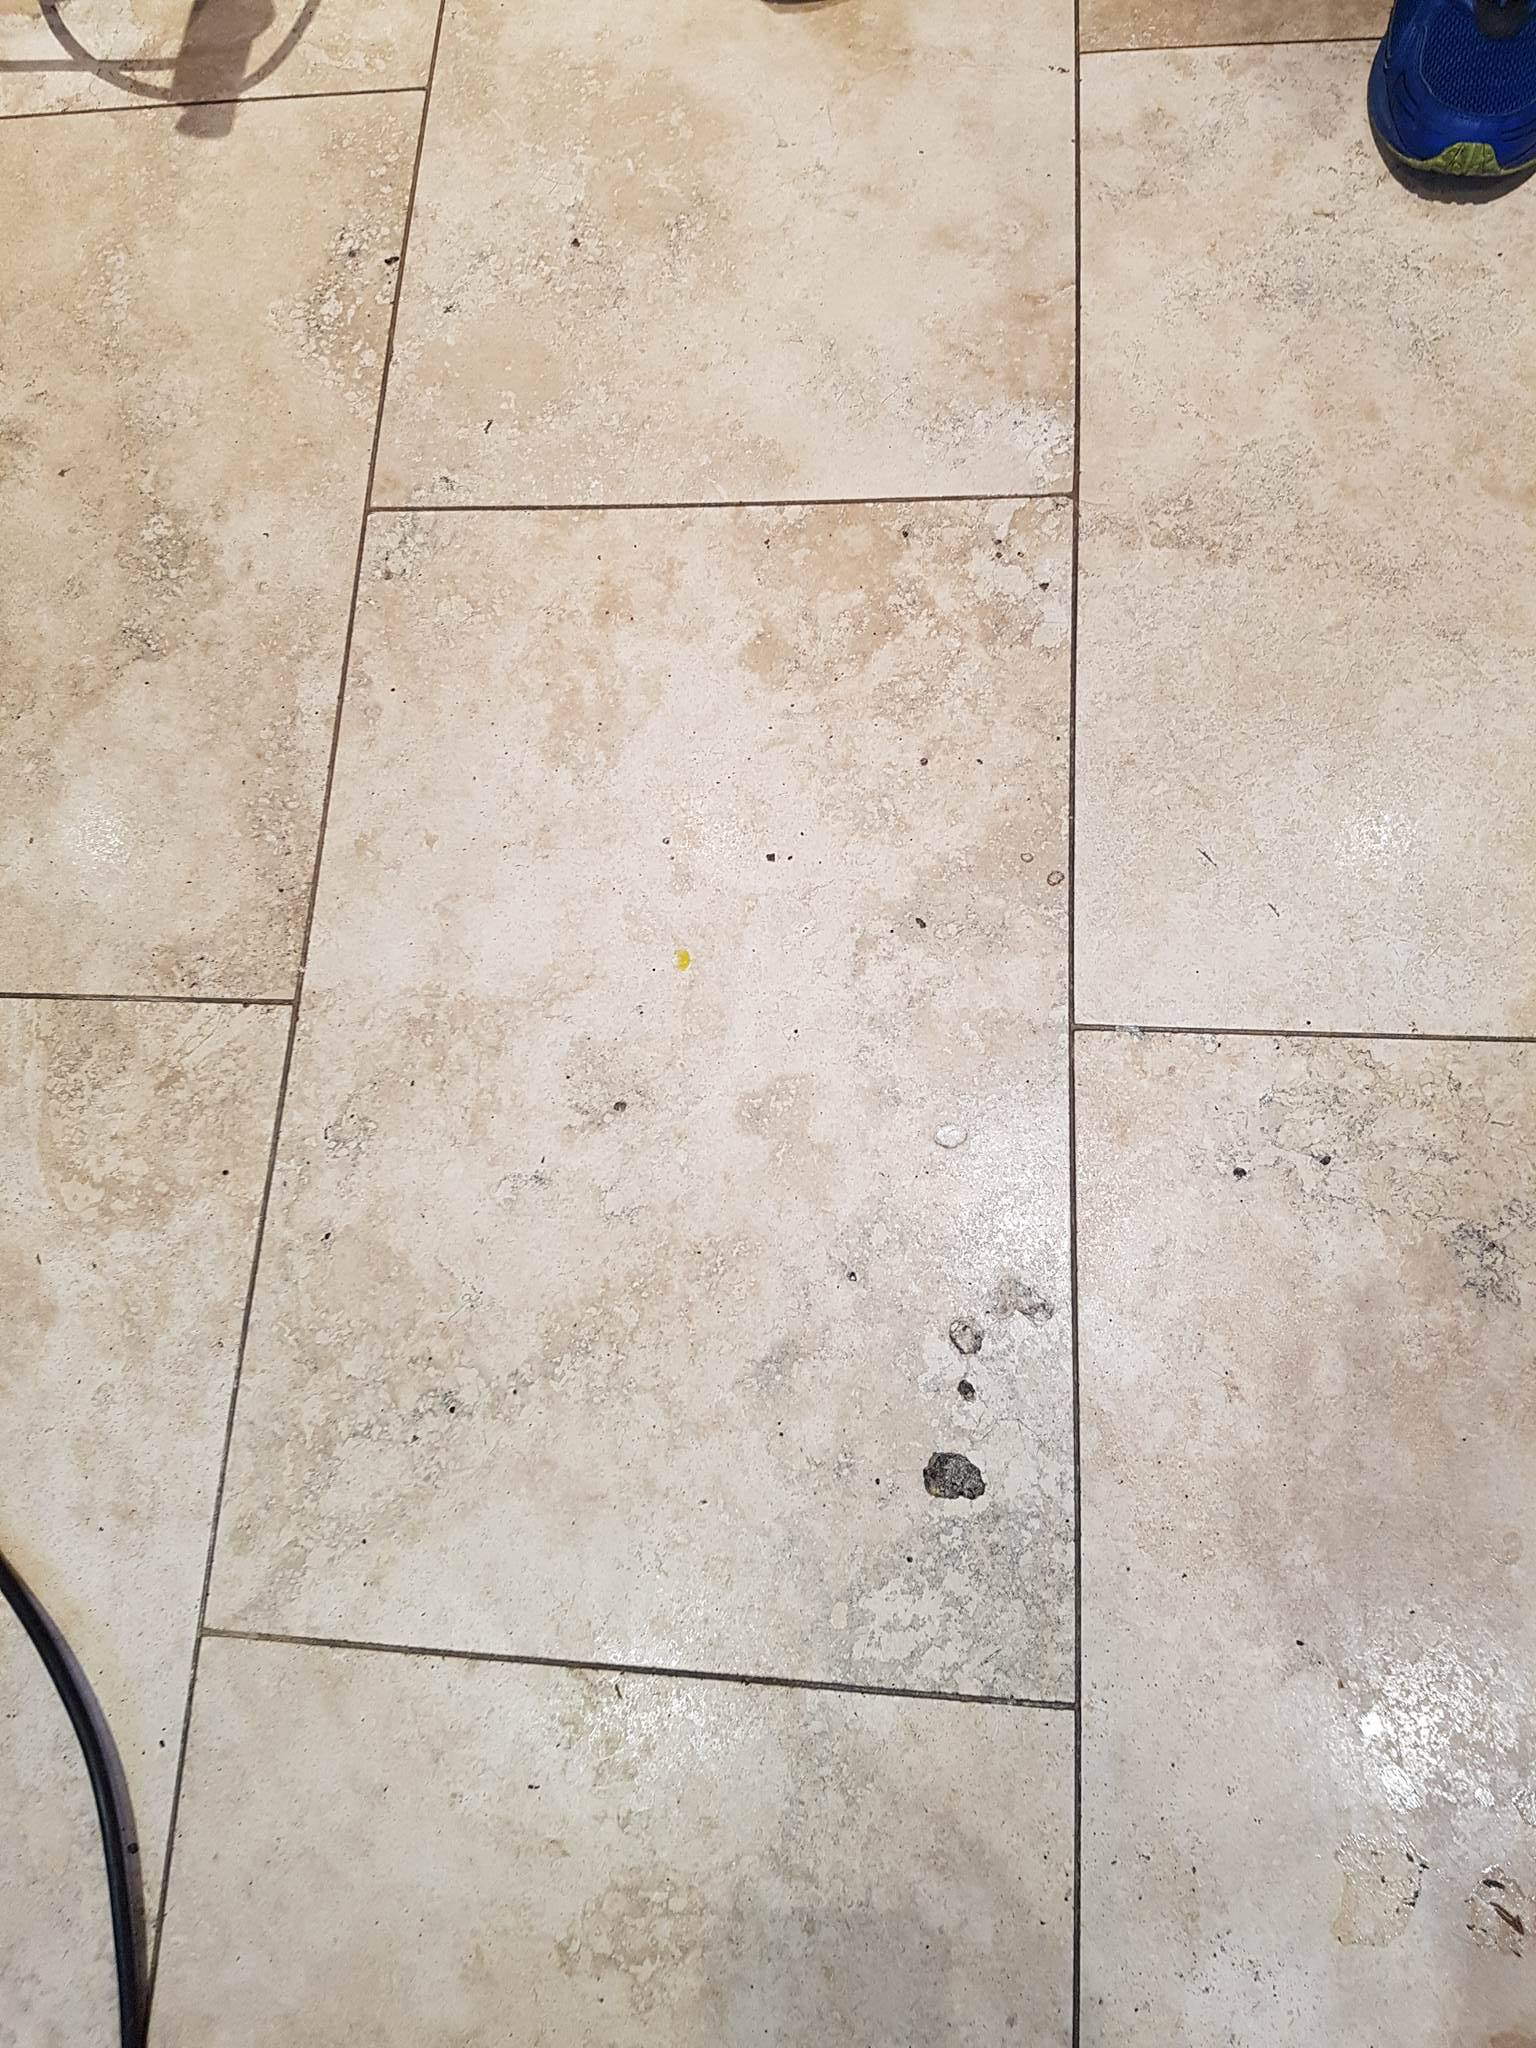 Travertine Tiled Floor Before Cleaning Bury